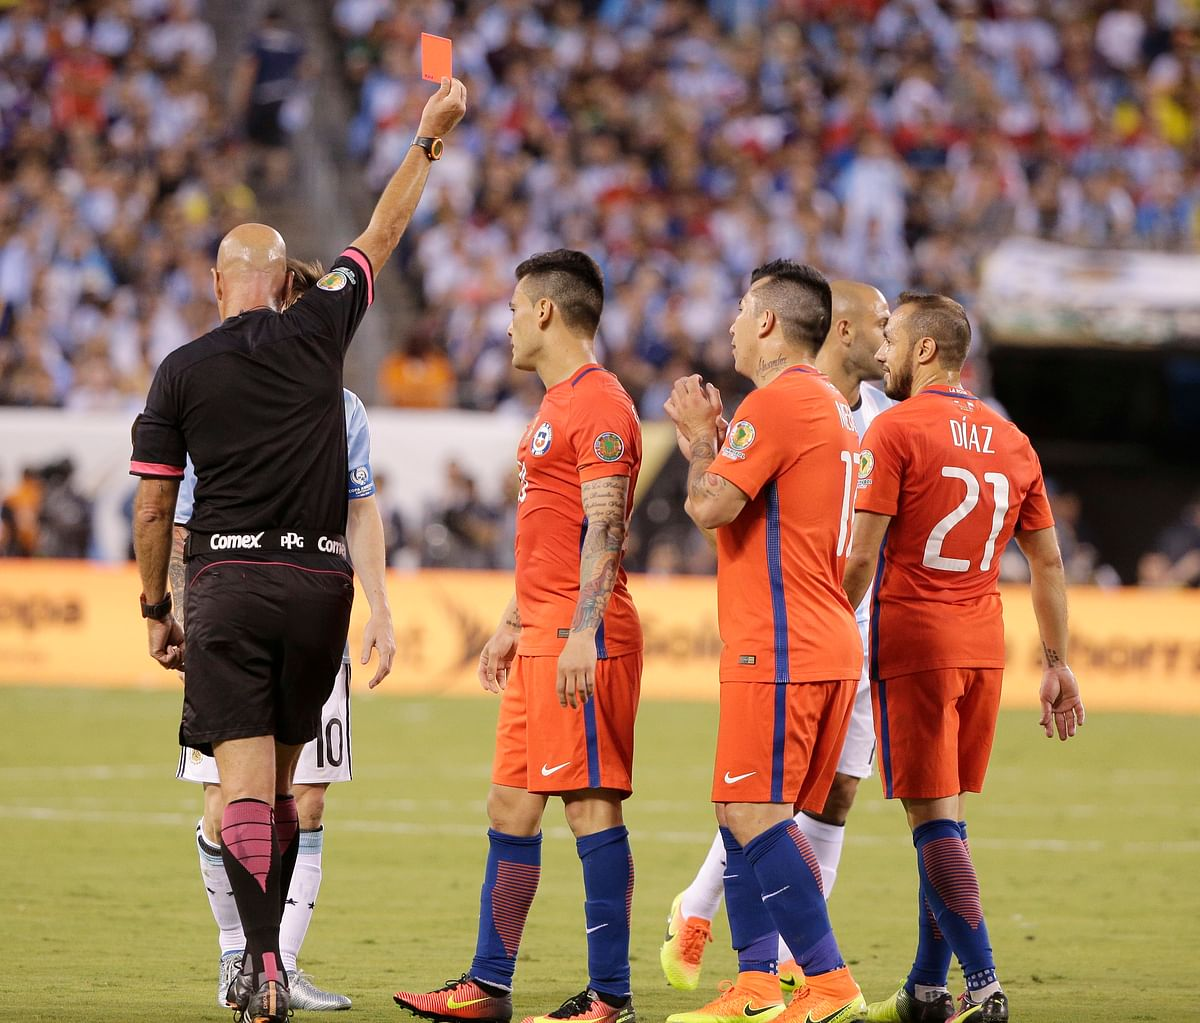 Referee Heber Lopes sends Chile's Marcelo Diaz (21) off after his foul on Argentina's Lionel Messi during the first half of the Copa America Centenario final. (Photo: AP)